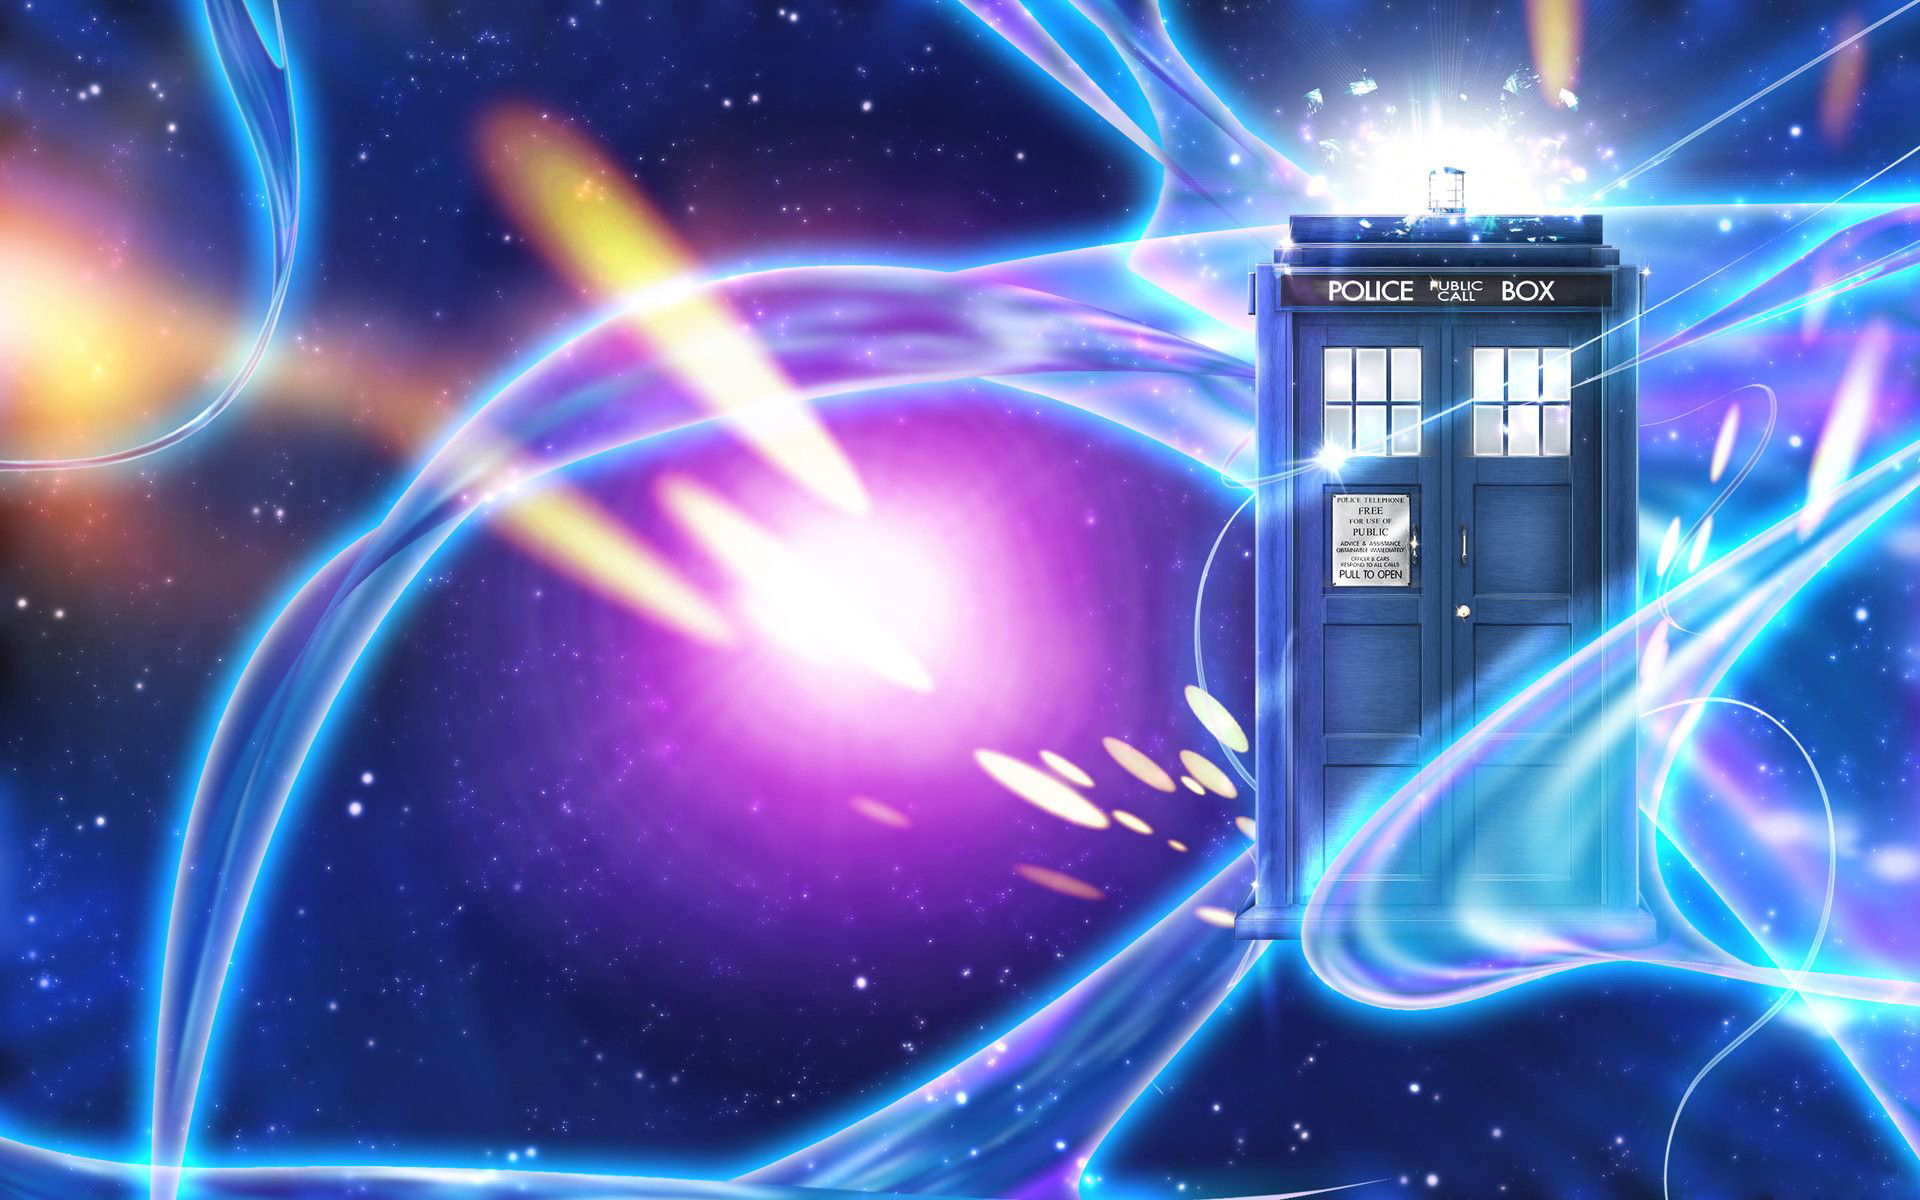 high-tardis-wallpapers-resolution-desktop | wallpaper.wiki